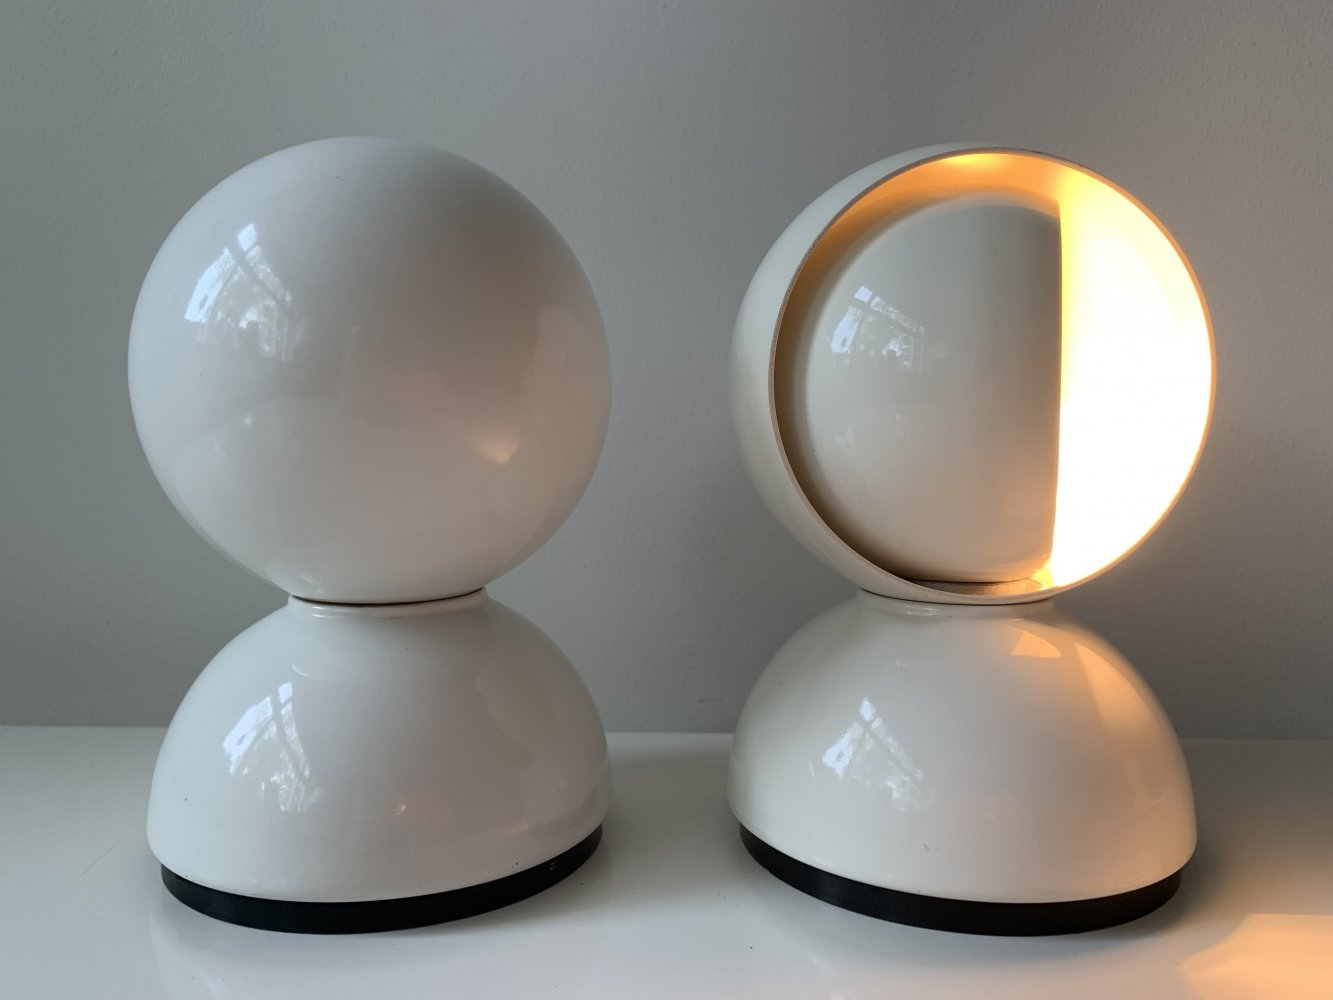 Set of white Eclisse table lights by Vico Magistretti for Artemide, 1970s